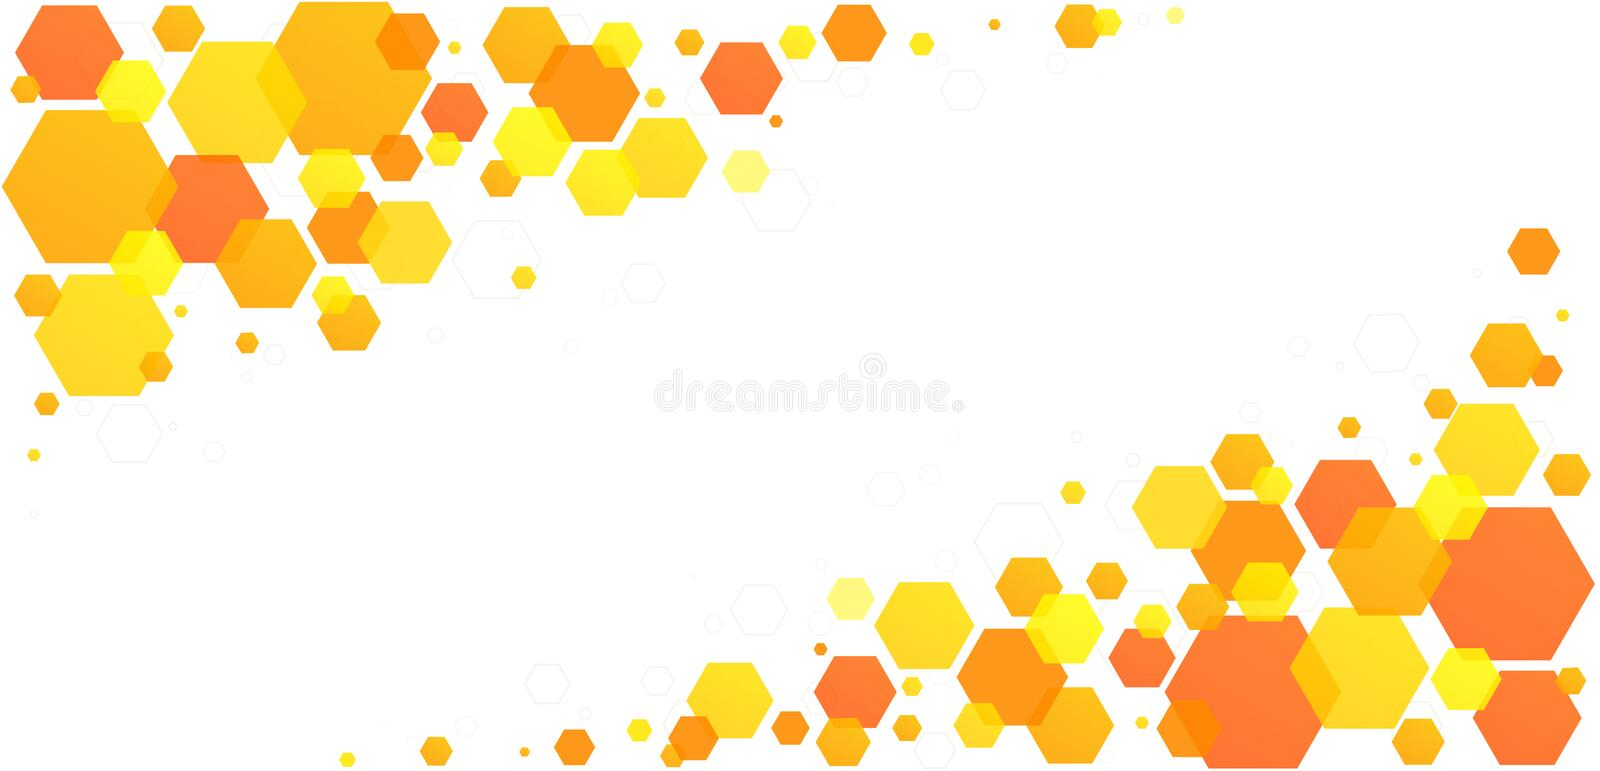 Honeycomb hexagon bee cells. Yellow-orange abstract geometric pattern from beehive cells royalty free illustration